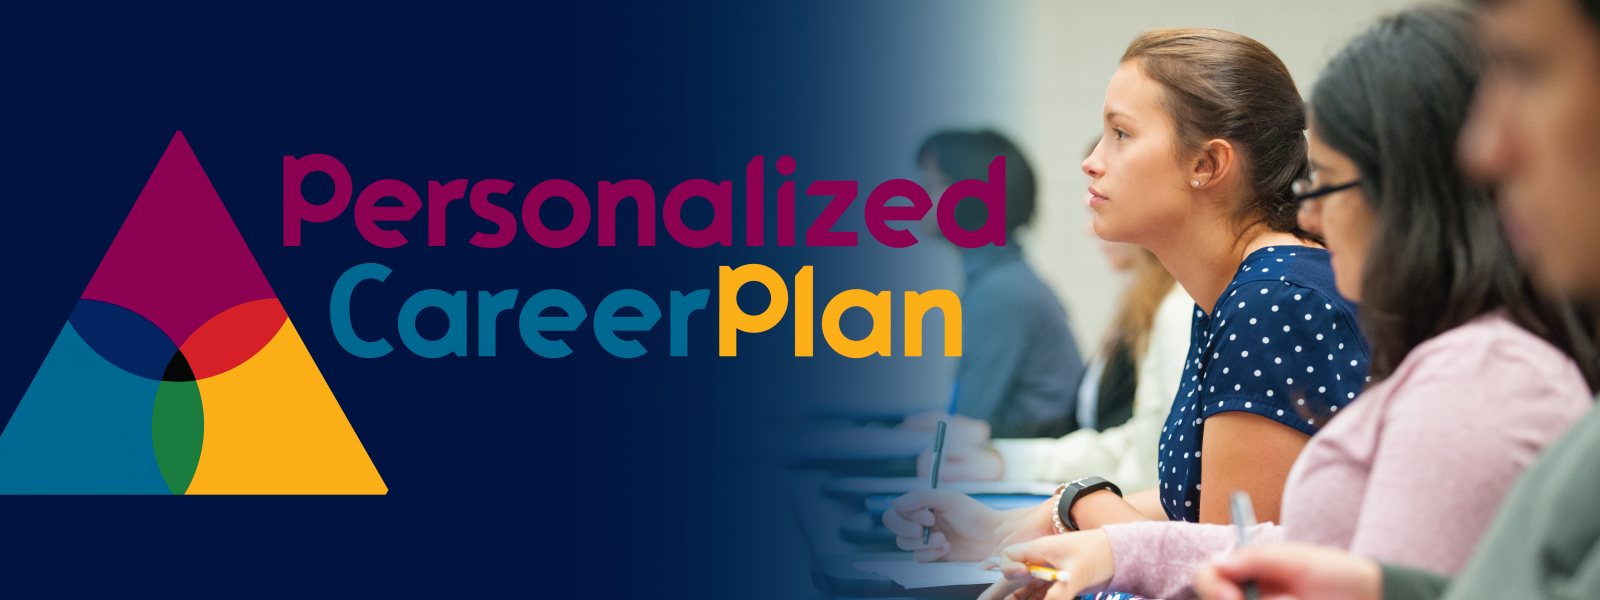 Personalized Career Plan